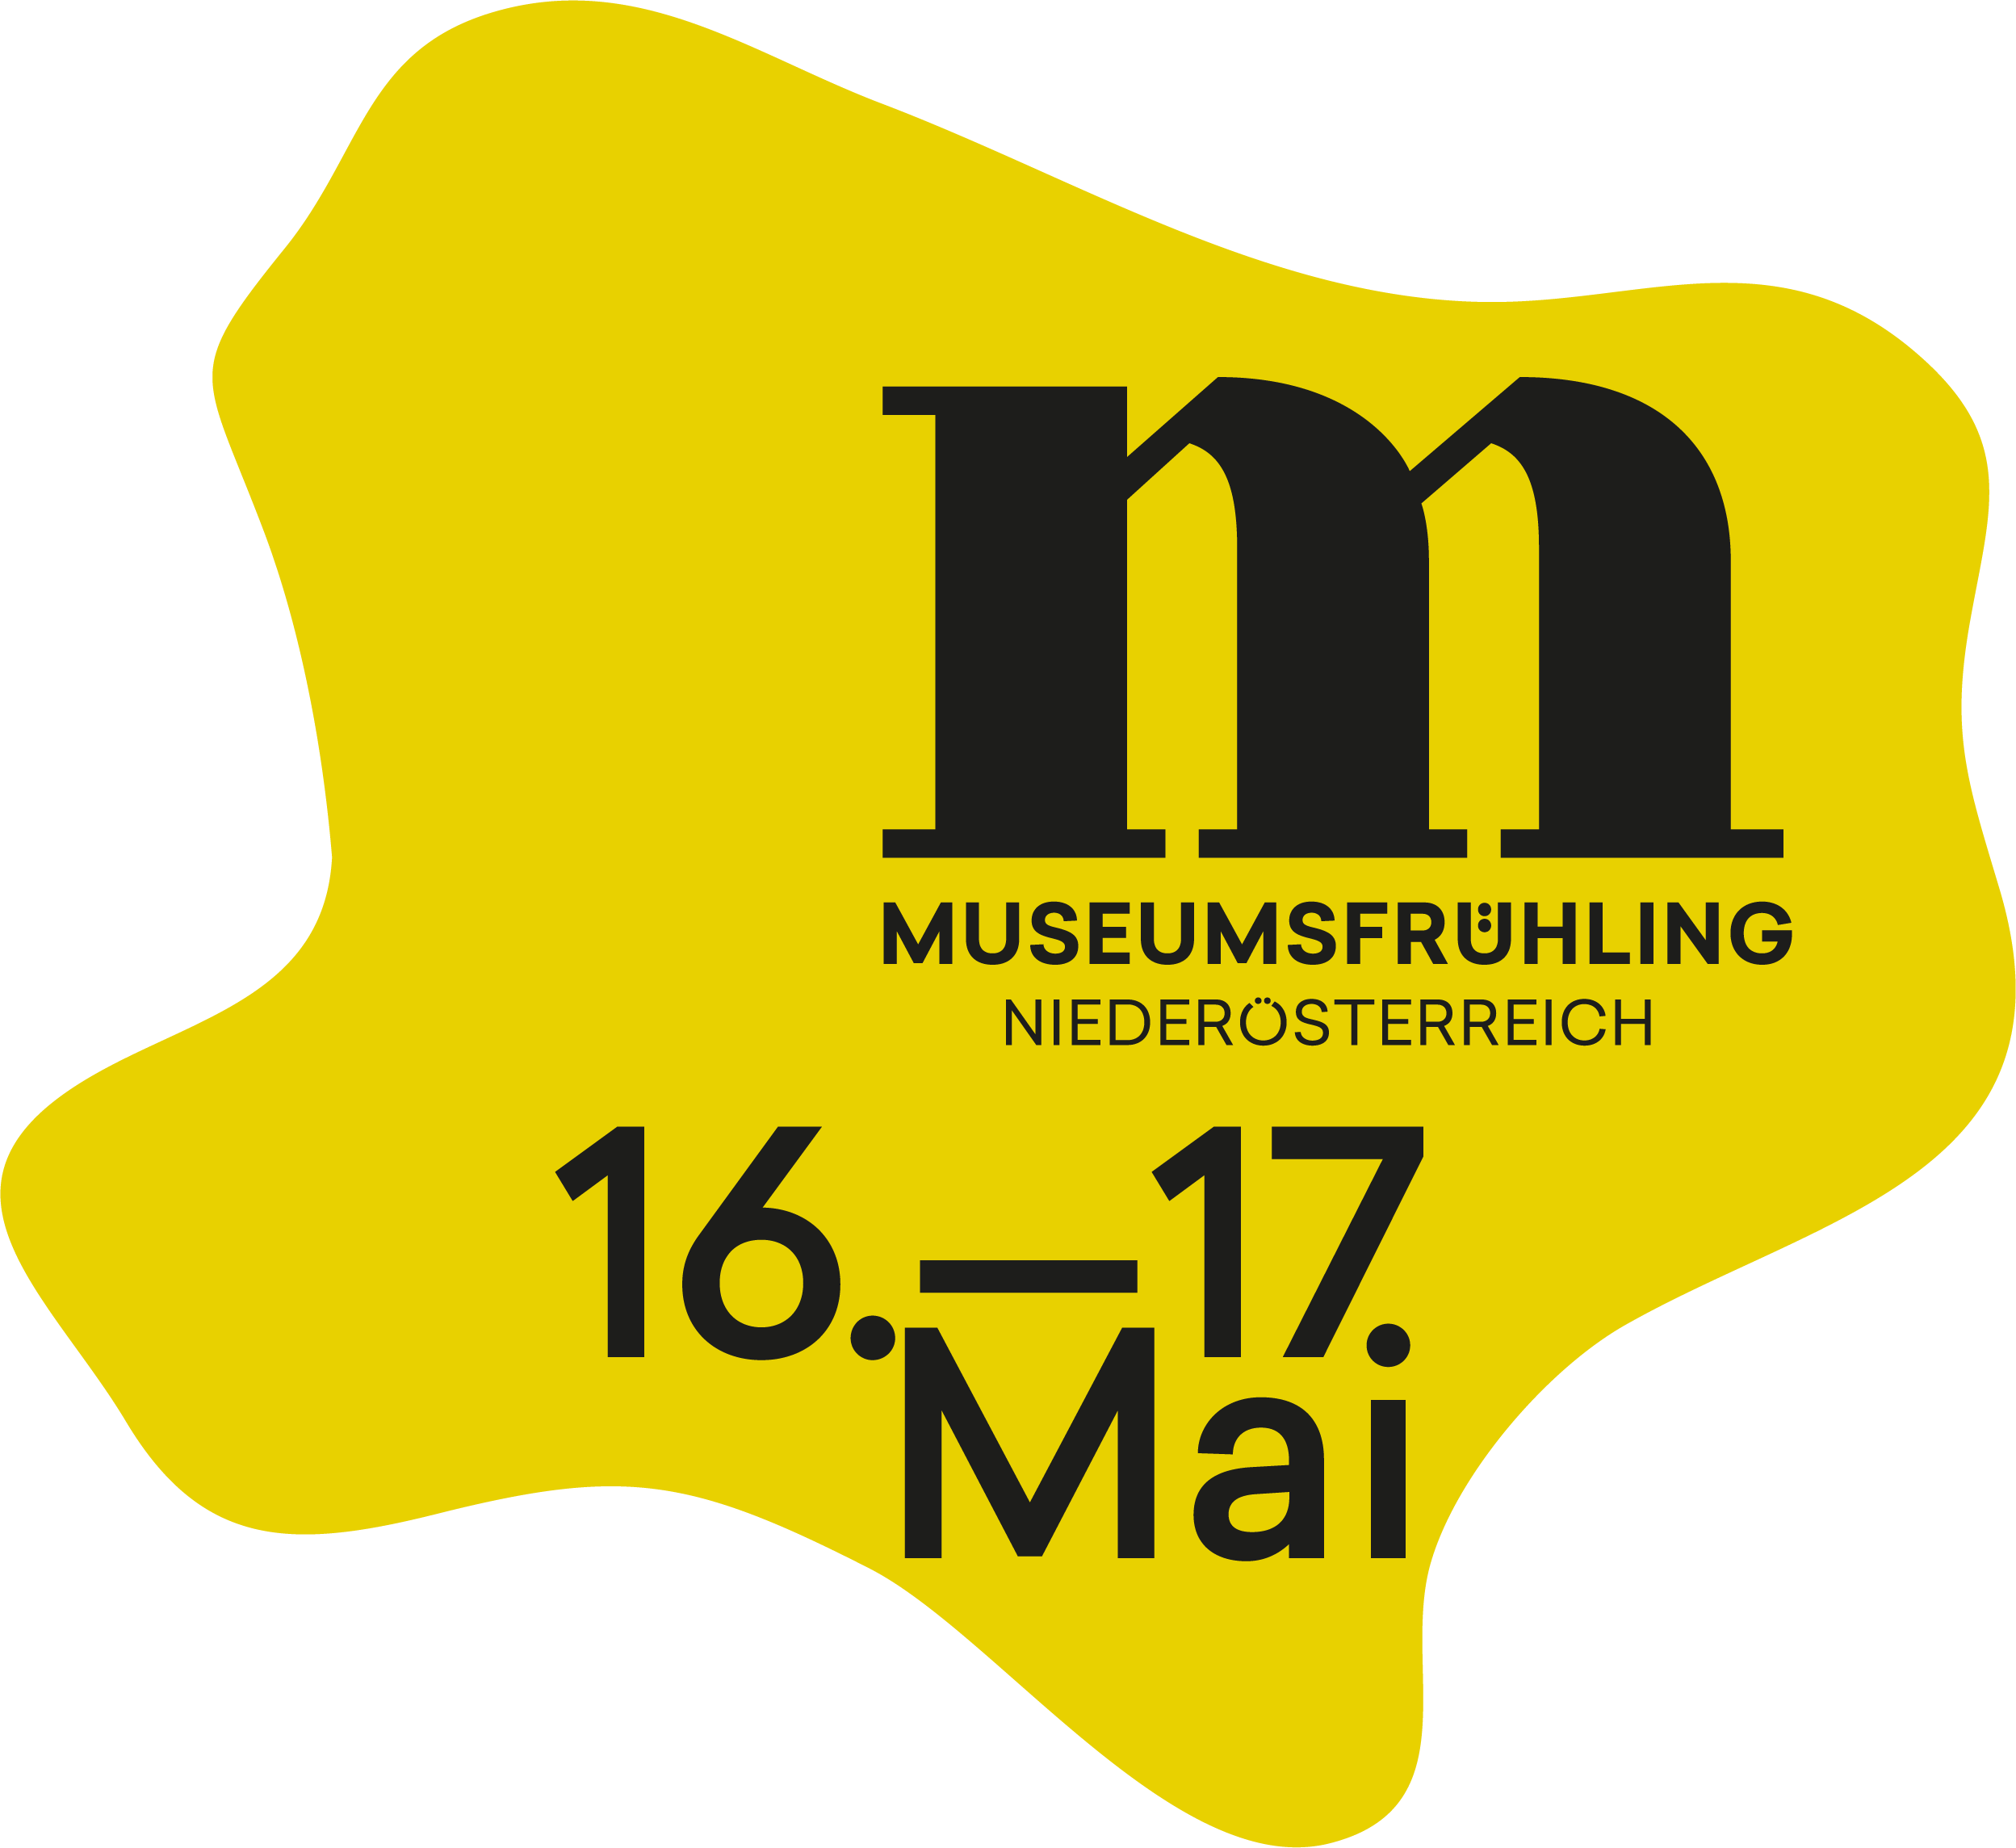 <span style='font-family: 'Roboto Slab'; font-weight: 700;'>Museumsfrühling </br></span><span style='font-size:16px;'>16. und 17. Mai 2020</span>